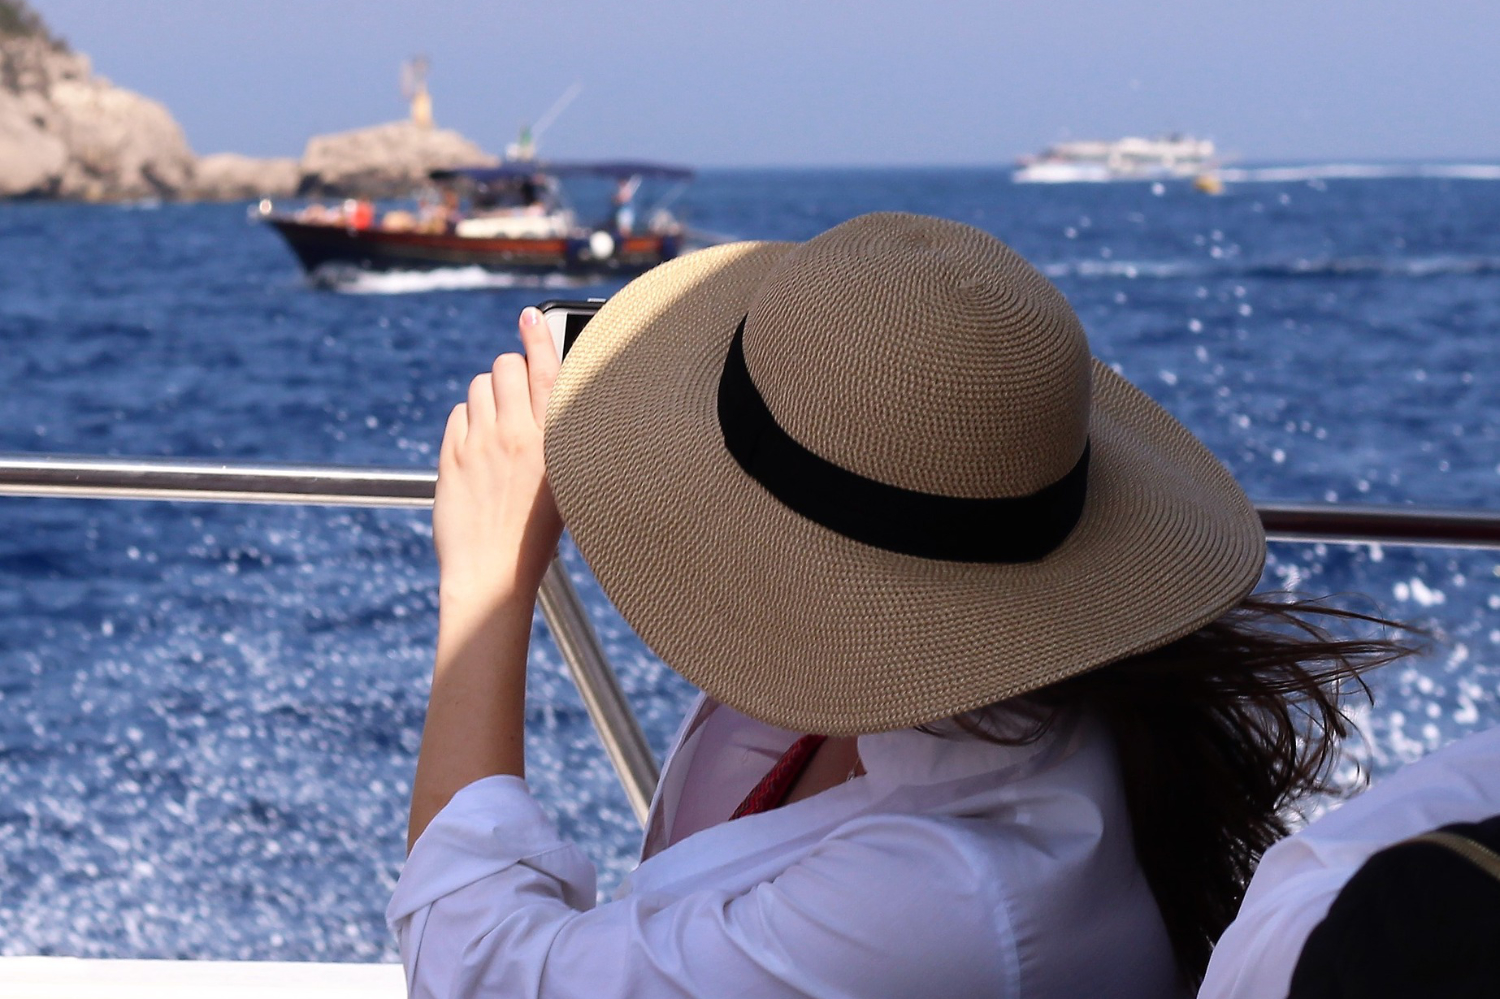 sun hat on sailboat